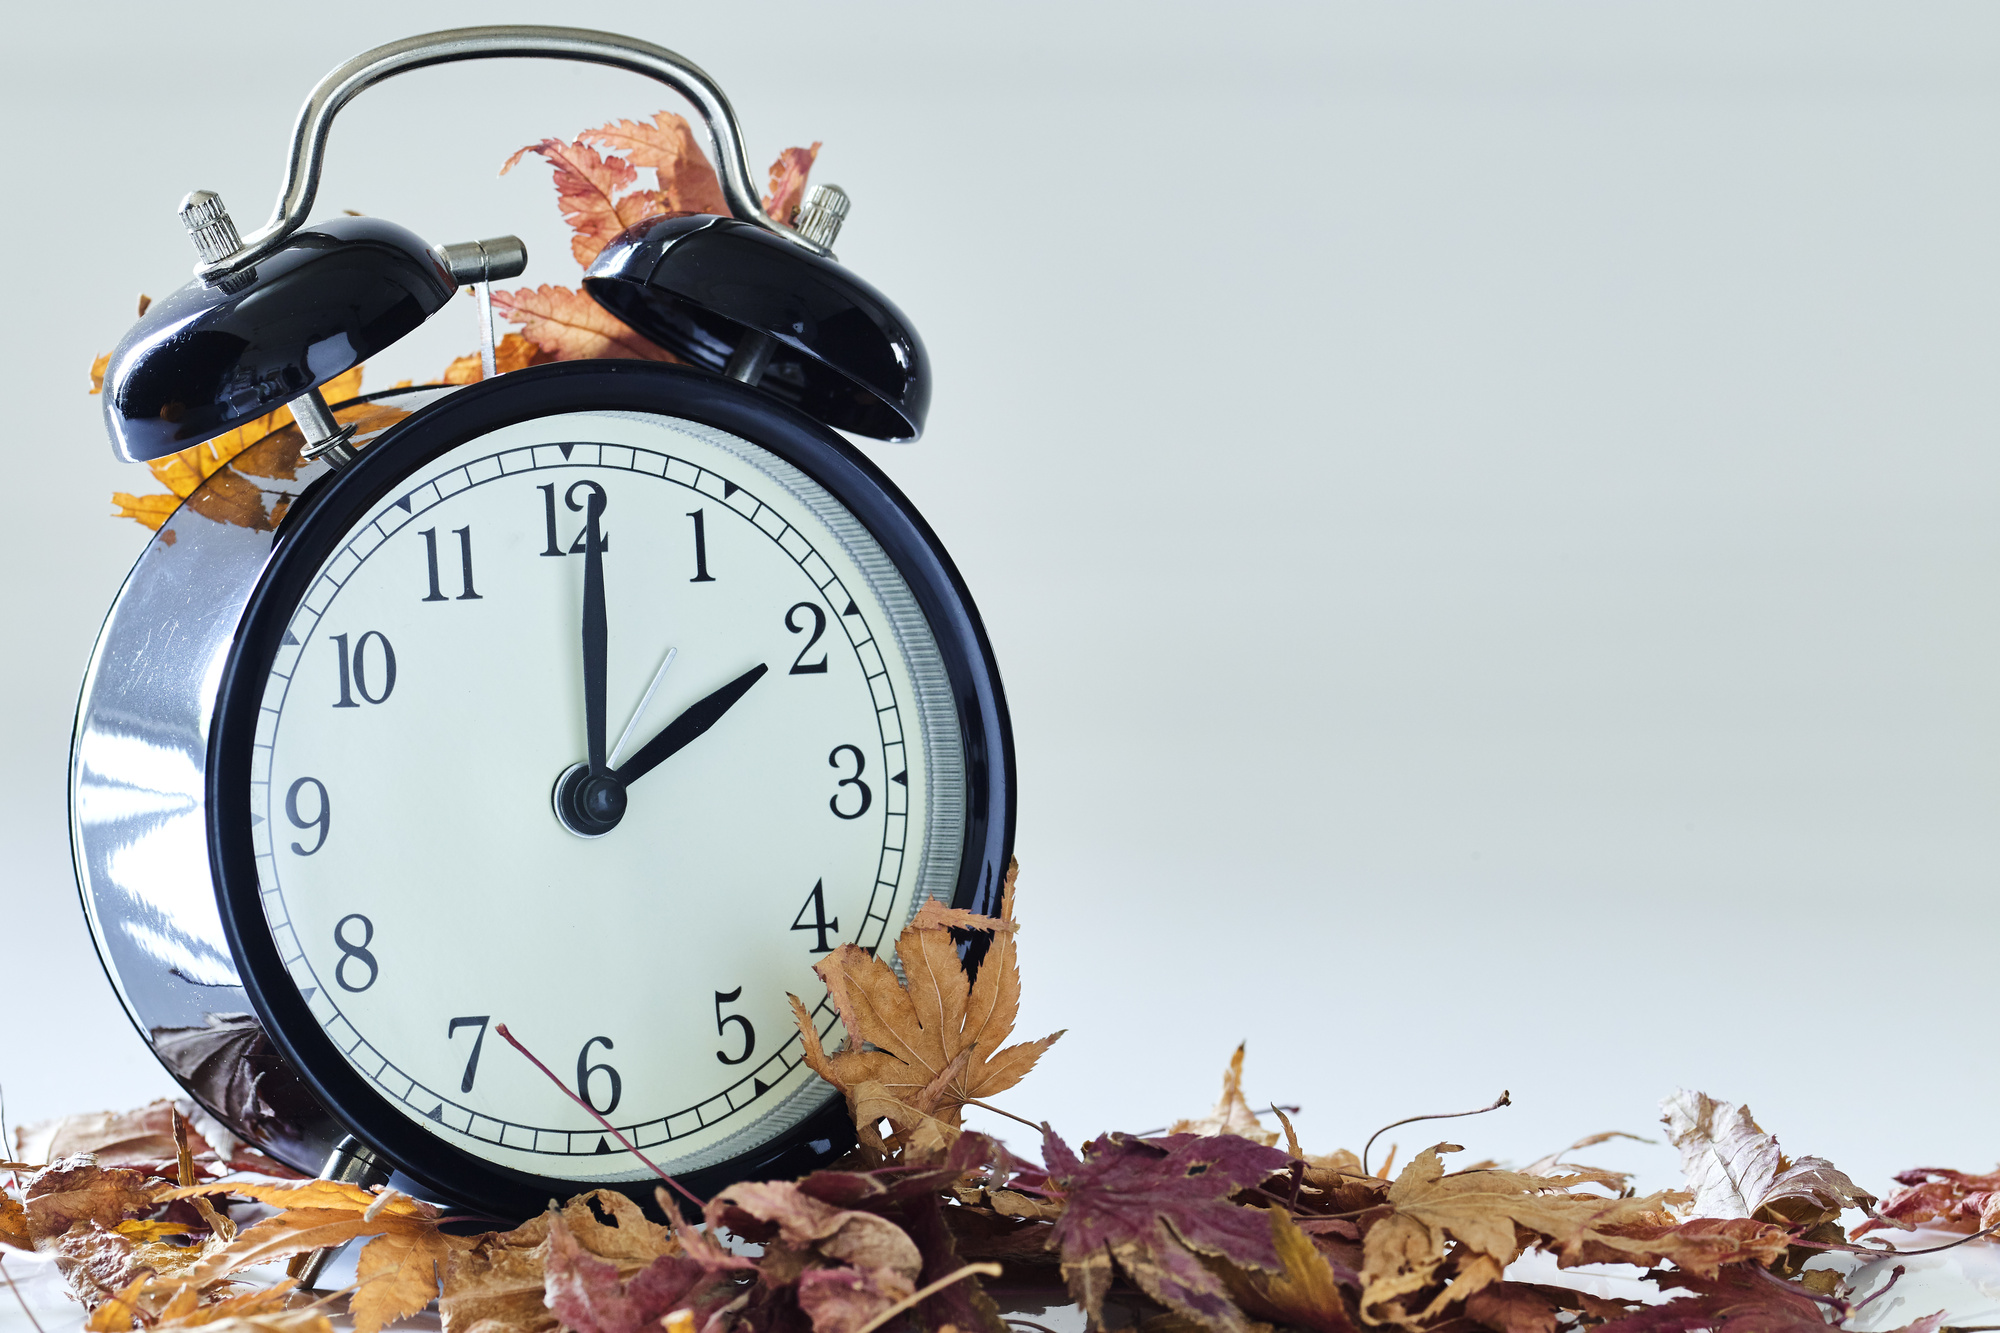 Daylight Savings Time Funny Quotes: 10 Funny Quotes About Daylight Savings Time Ending You'll